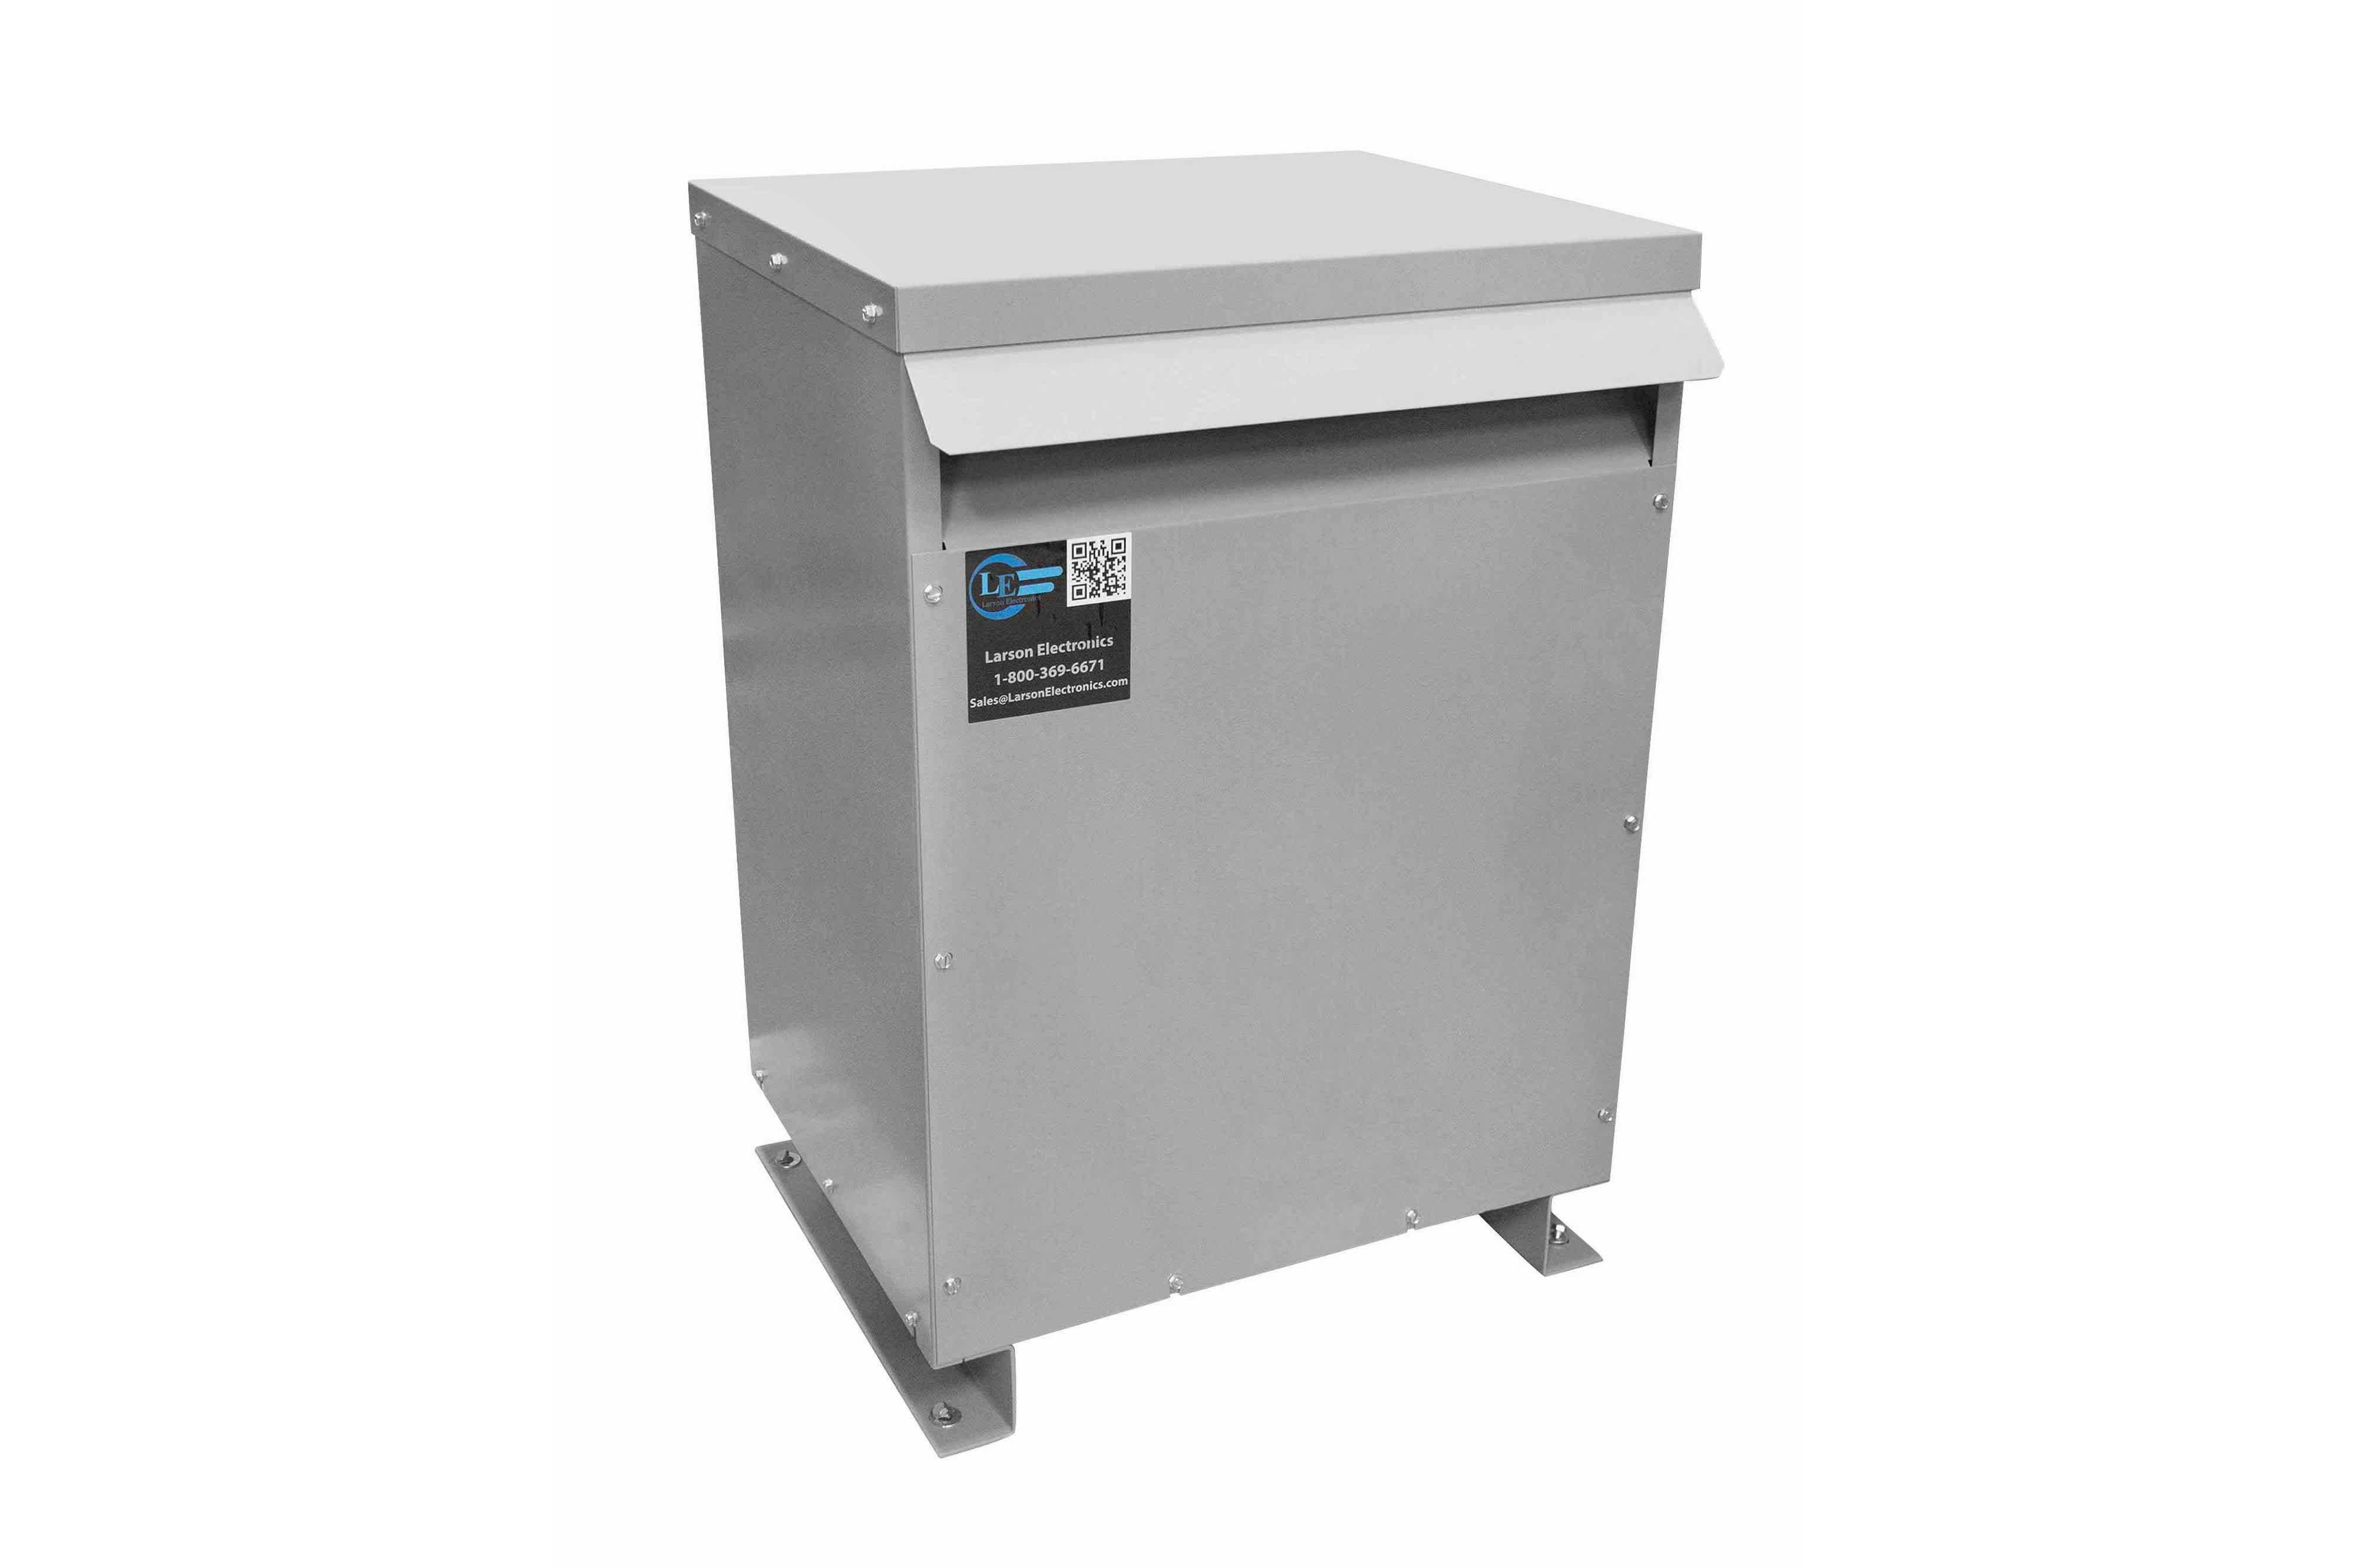 30 kVA 3PH Isolation Transformer, 208V Wye Primary, 400Y/231 Wye-N Secondary, N3R, Ventilated, 60 Hz